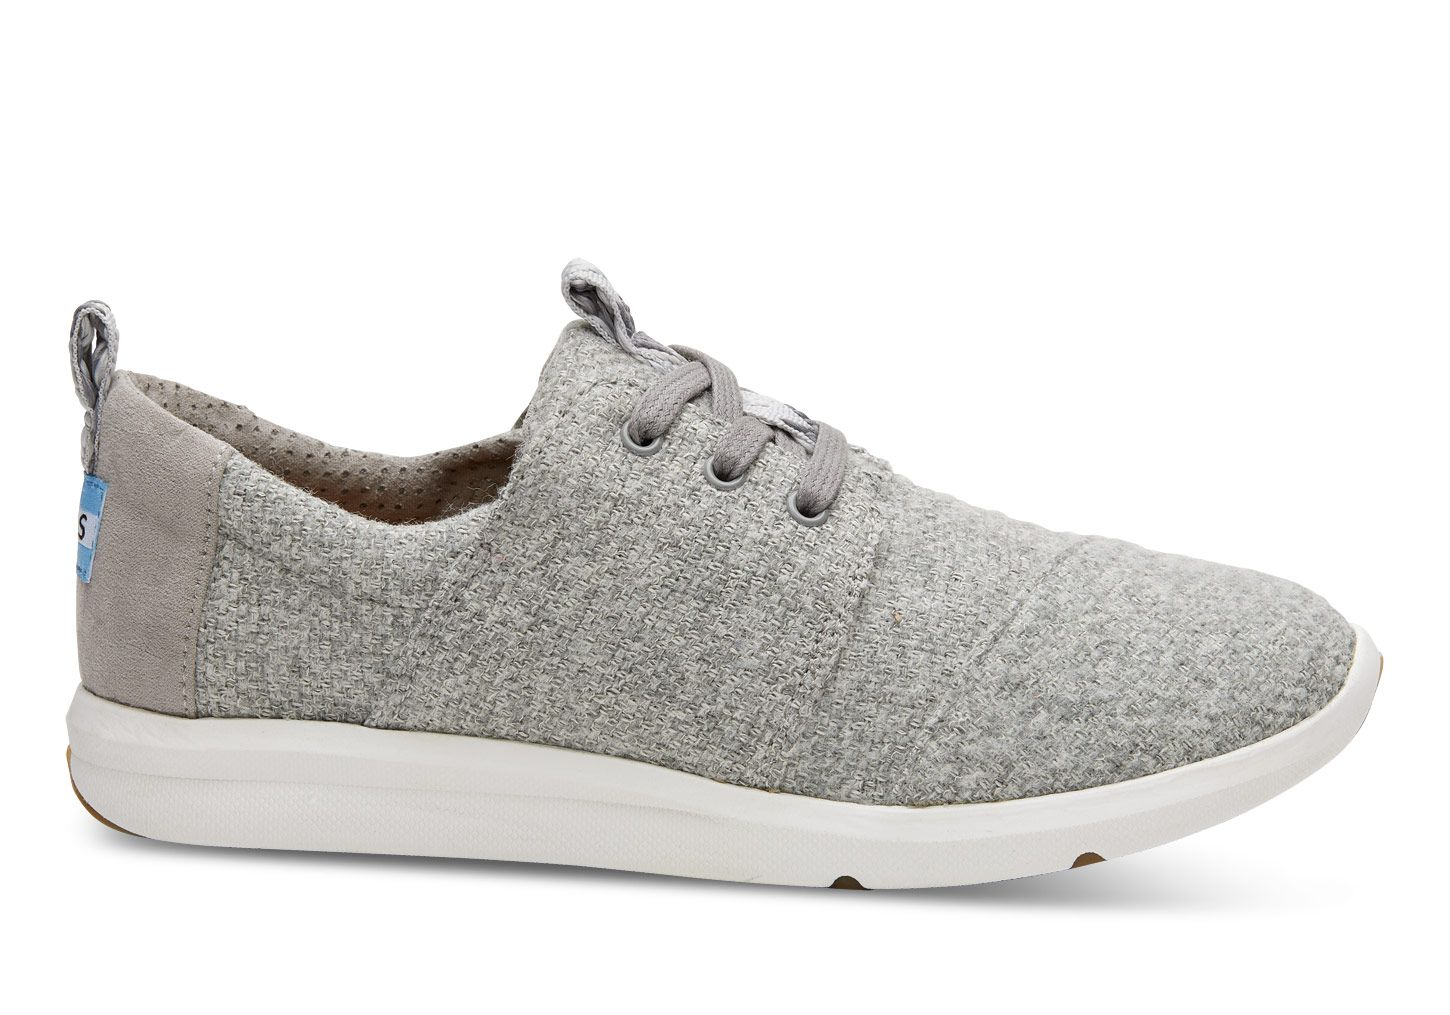 81d27d39e1f Shop TOMS Women s Sneakers for a variety of everyday styles and trends.  With every product you purchase